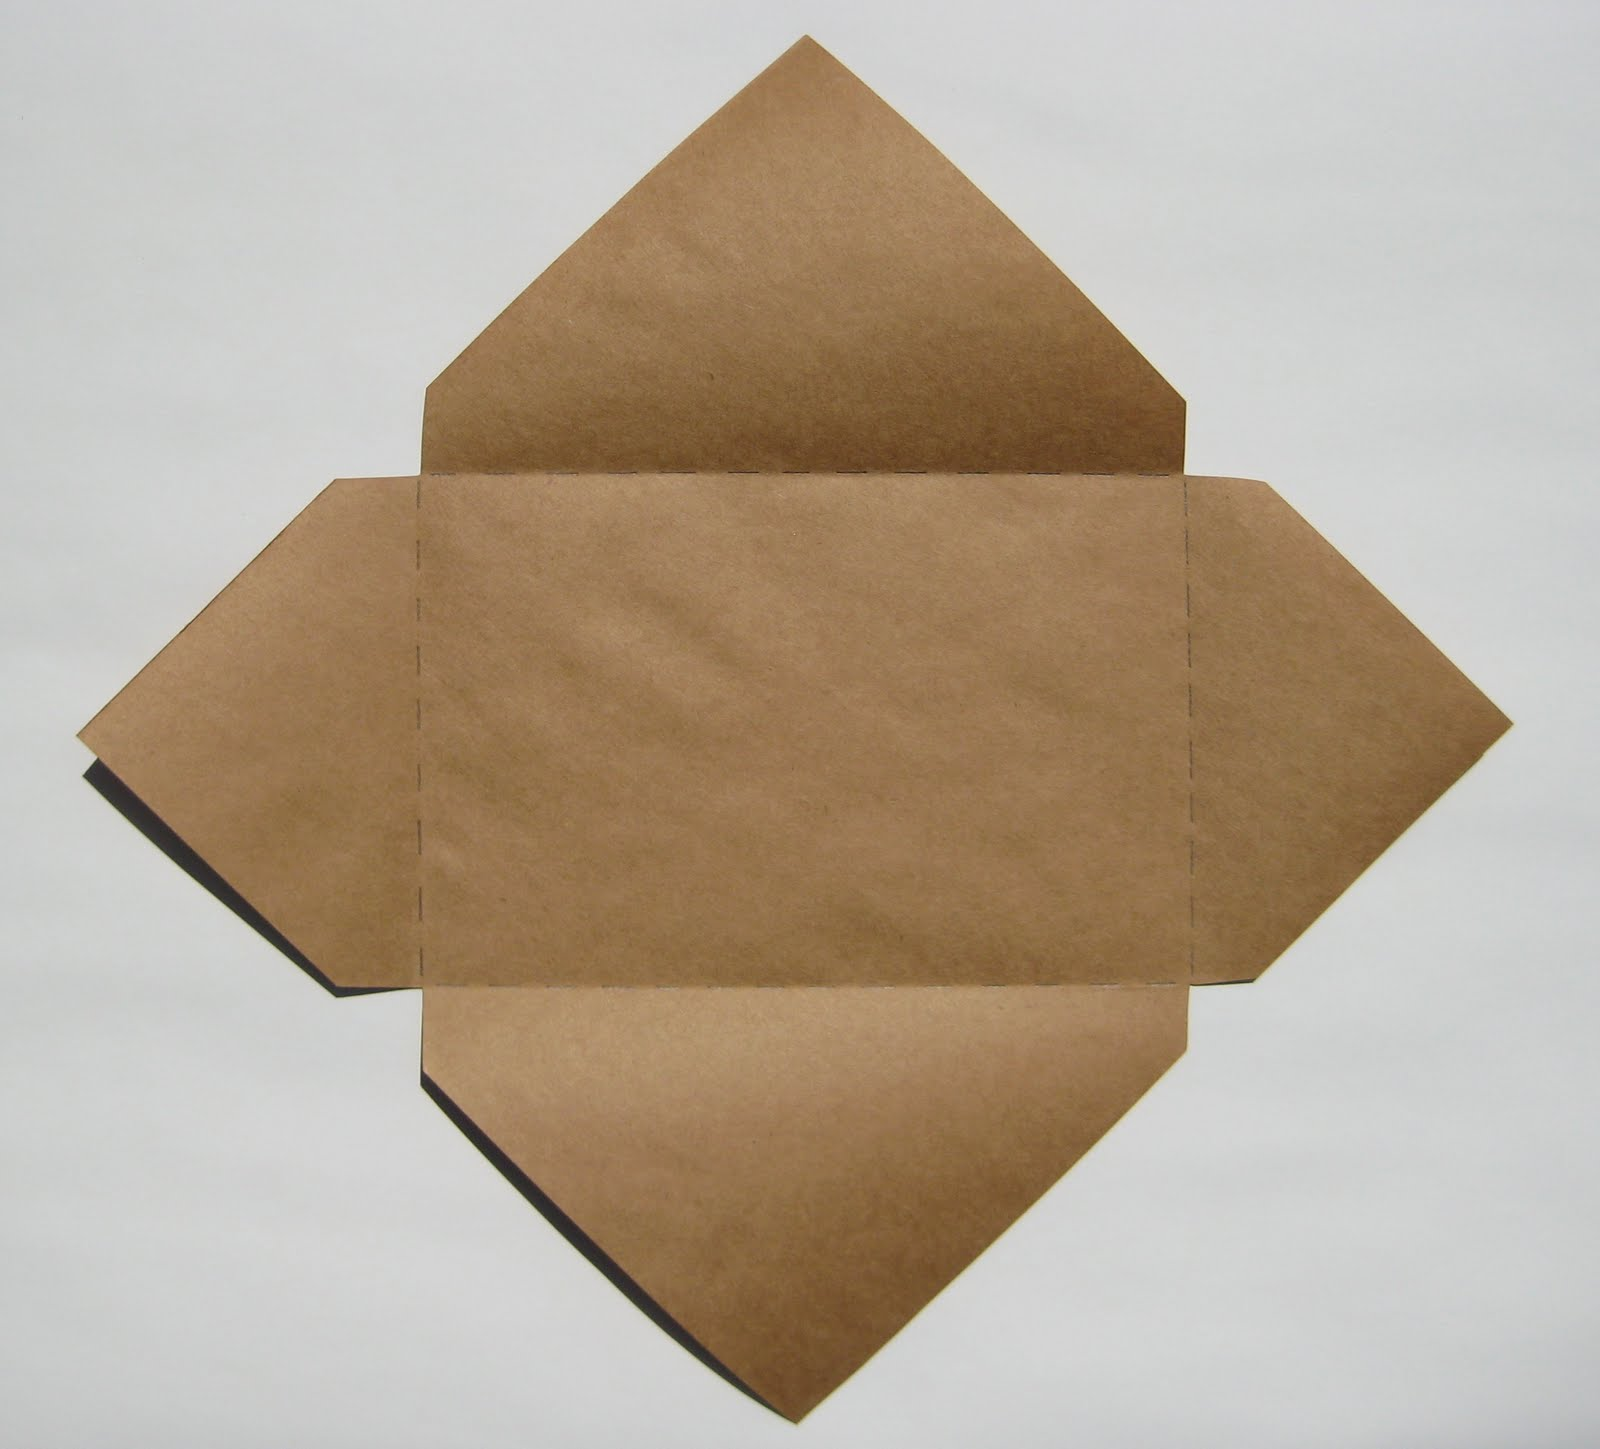 Easy envelopes for handmade cards teachkidsart dont even need to measure their paper they just need to understand the concept of starting with a square thats a little bit larger than the card bookmarktalkfo Images